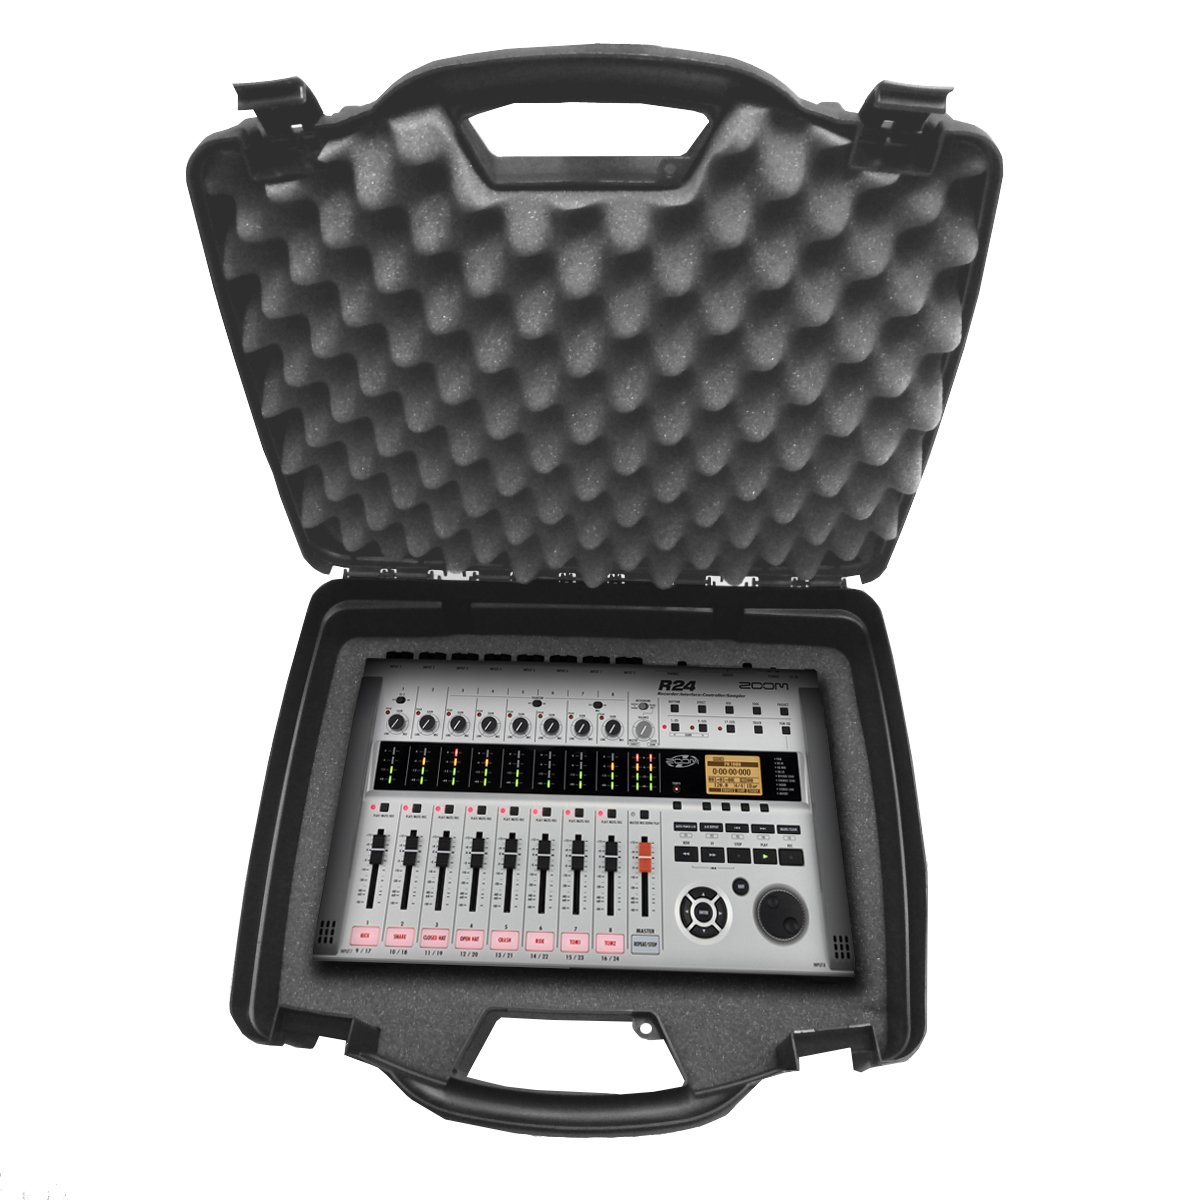 STUDIOCASE Portable MultiTrack Recorder Controller and Digital Stereo Interface Case works for- ZOOM R16 , R8 , R24 , TAC-2 , Tac-2R , MRS-8 and More Dis-2439